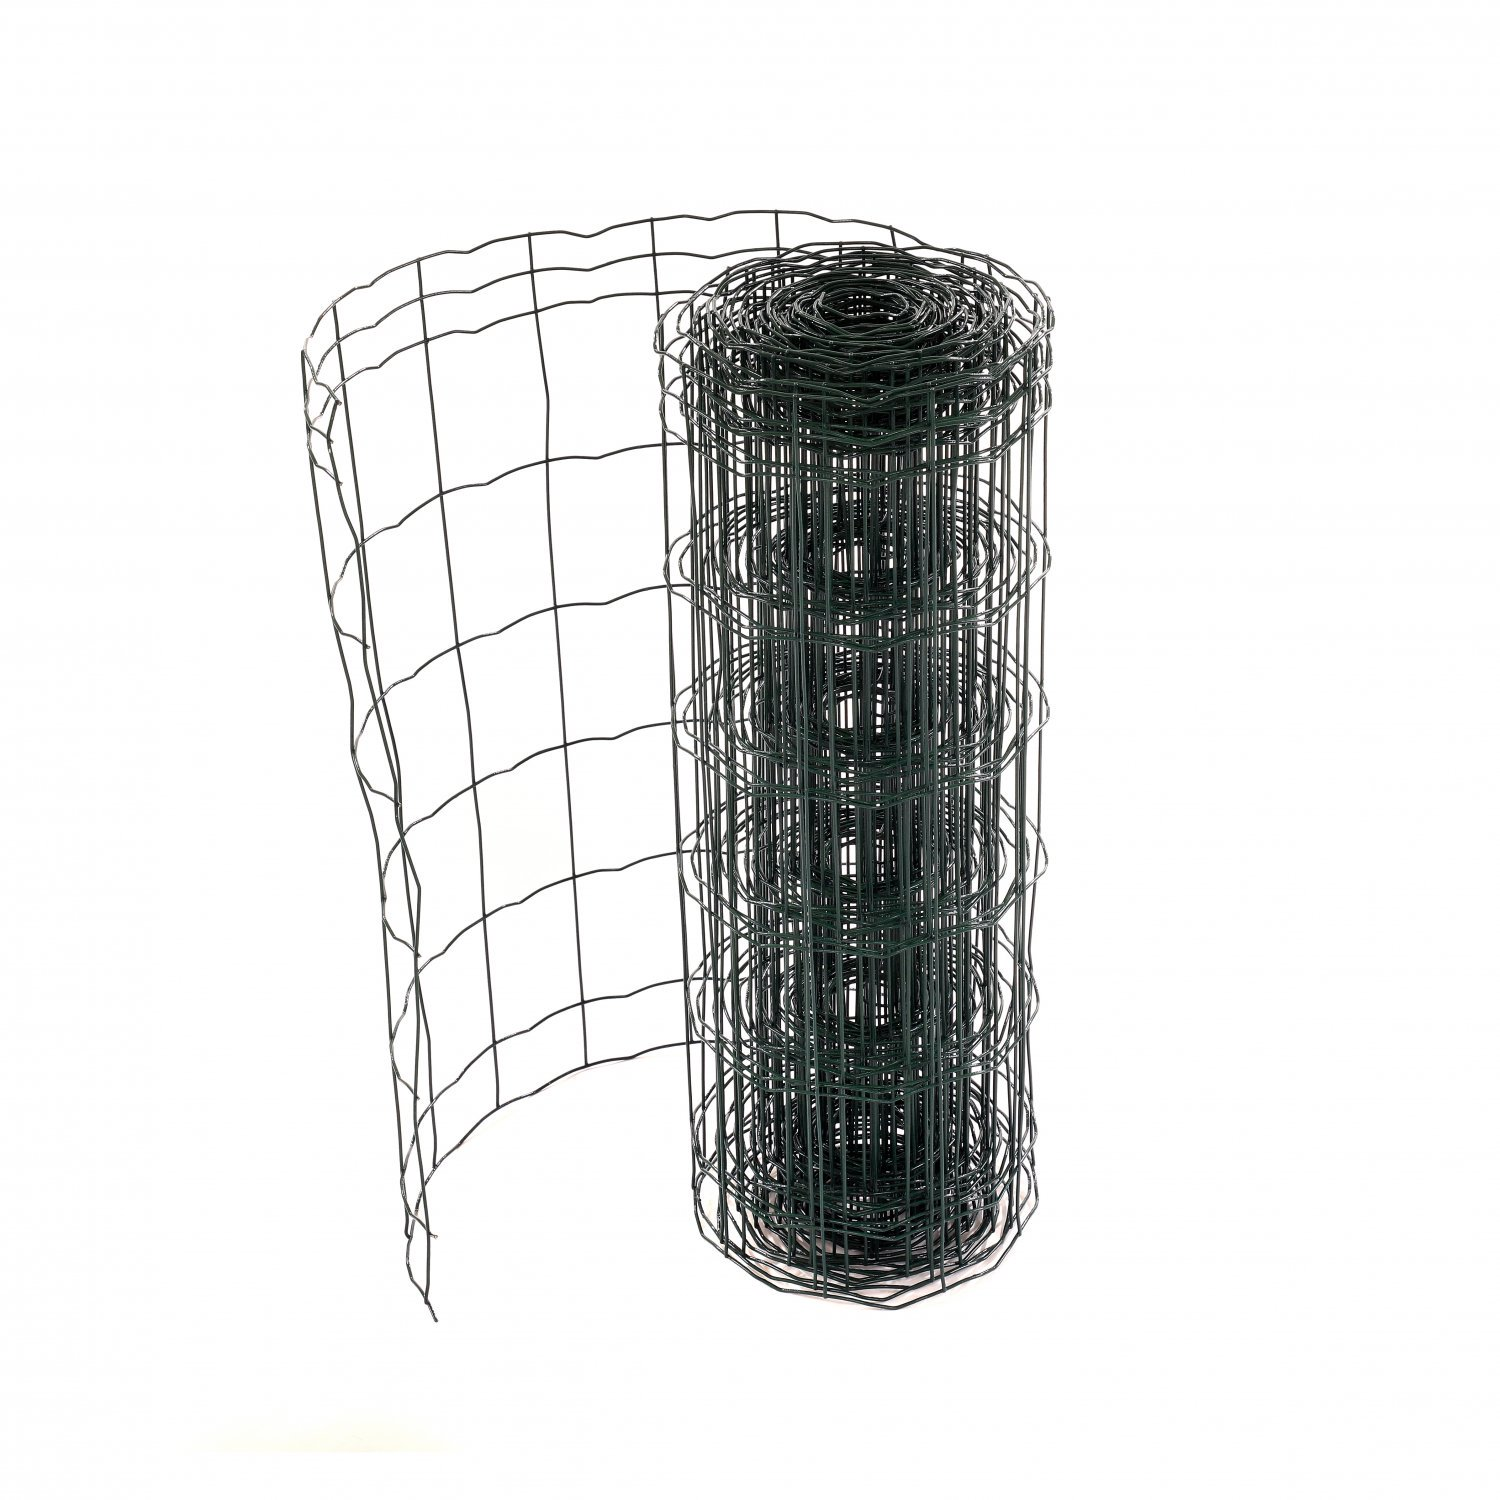 0.6m x 10m Green PVC Coated Galvanised Steel Mesh Stock Fencing